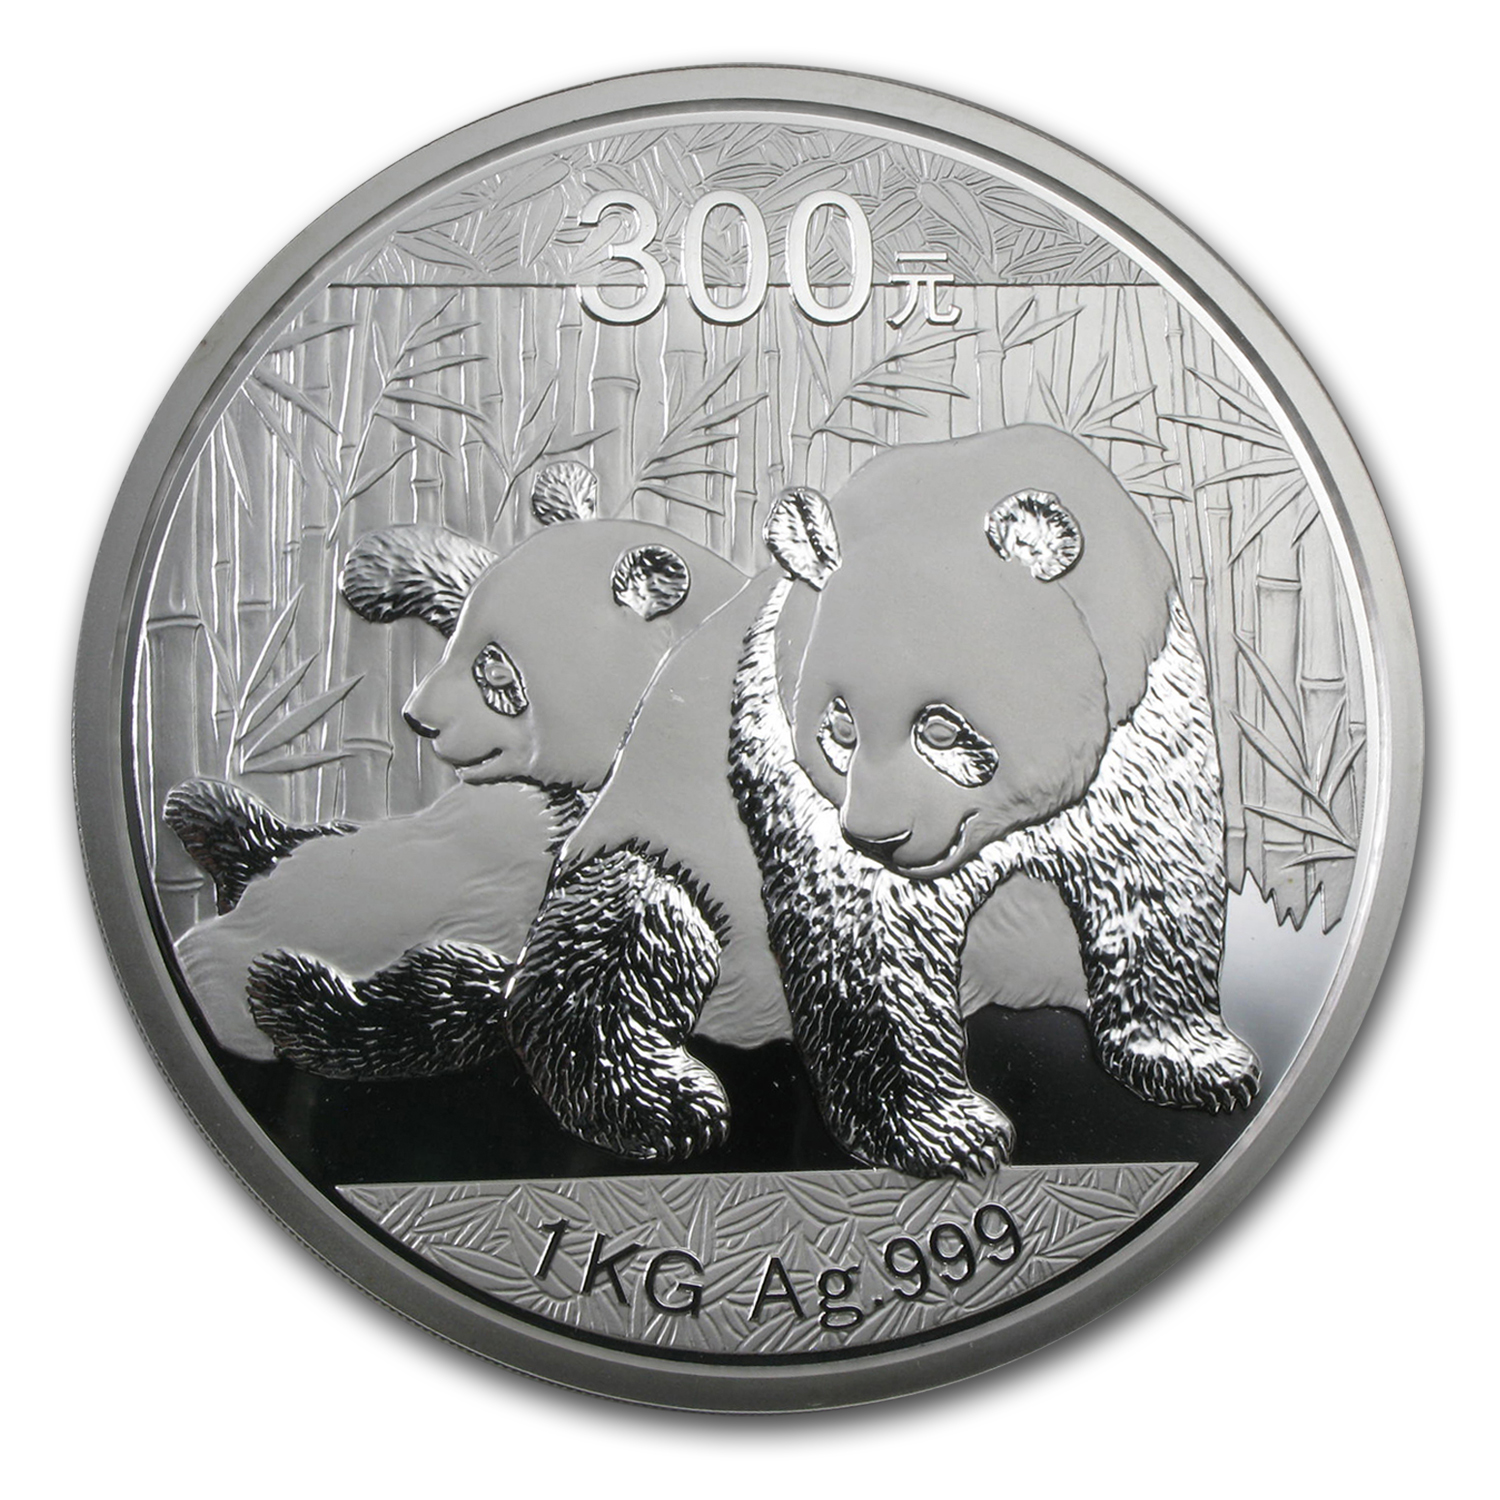 2010 1 Kilo Silver Chinese Panda Proof (w/Box & COA)